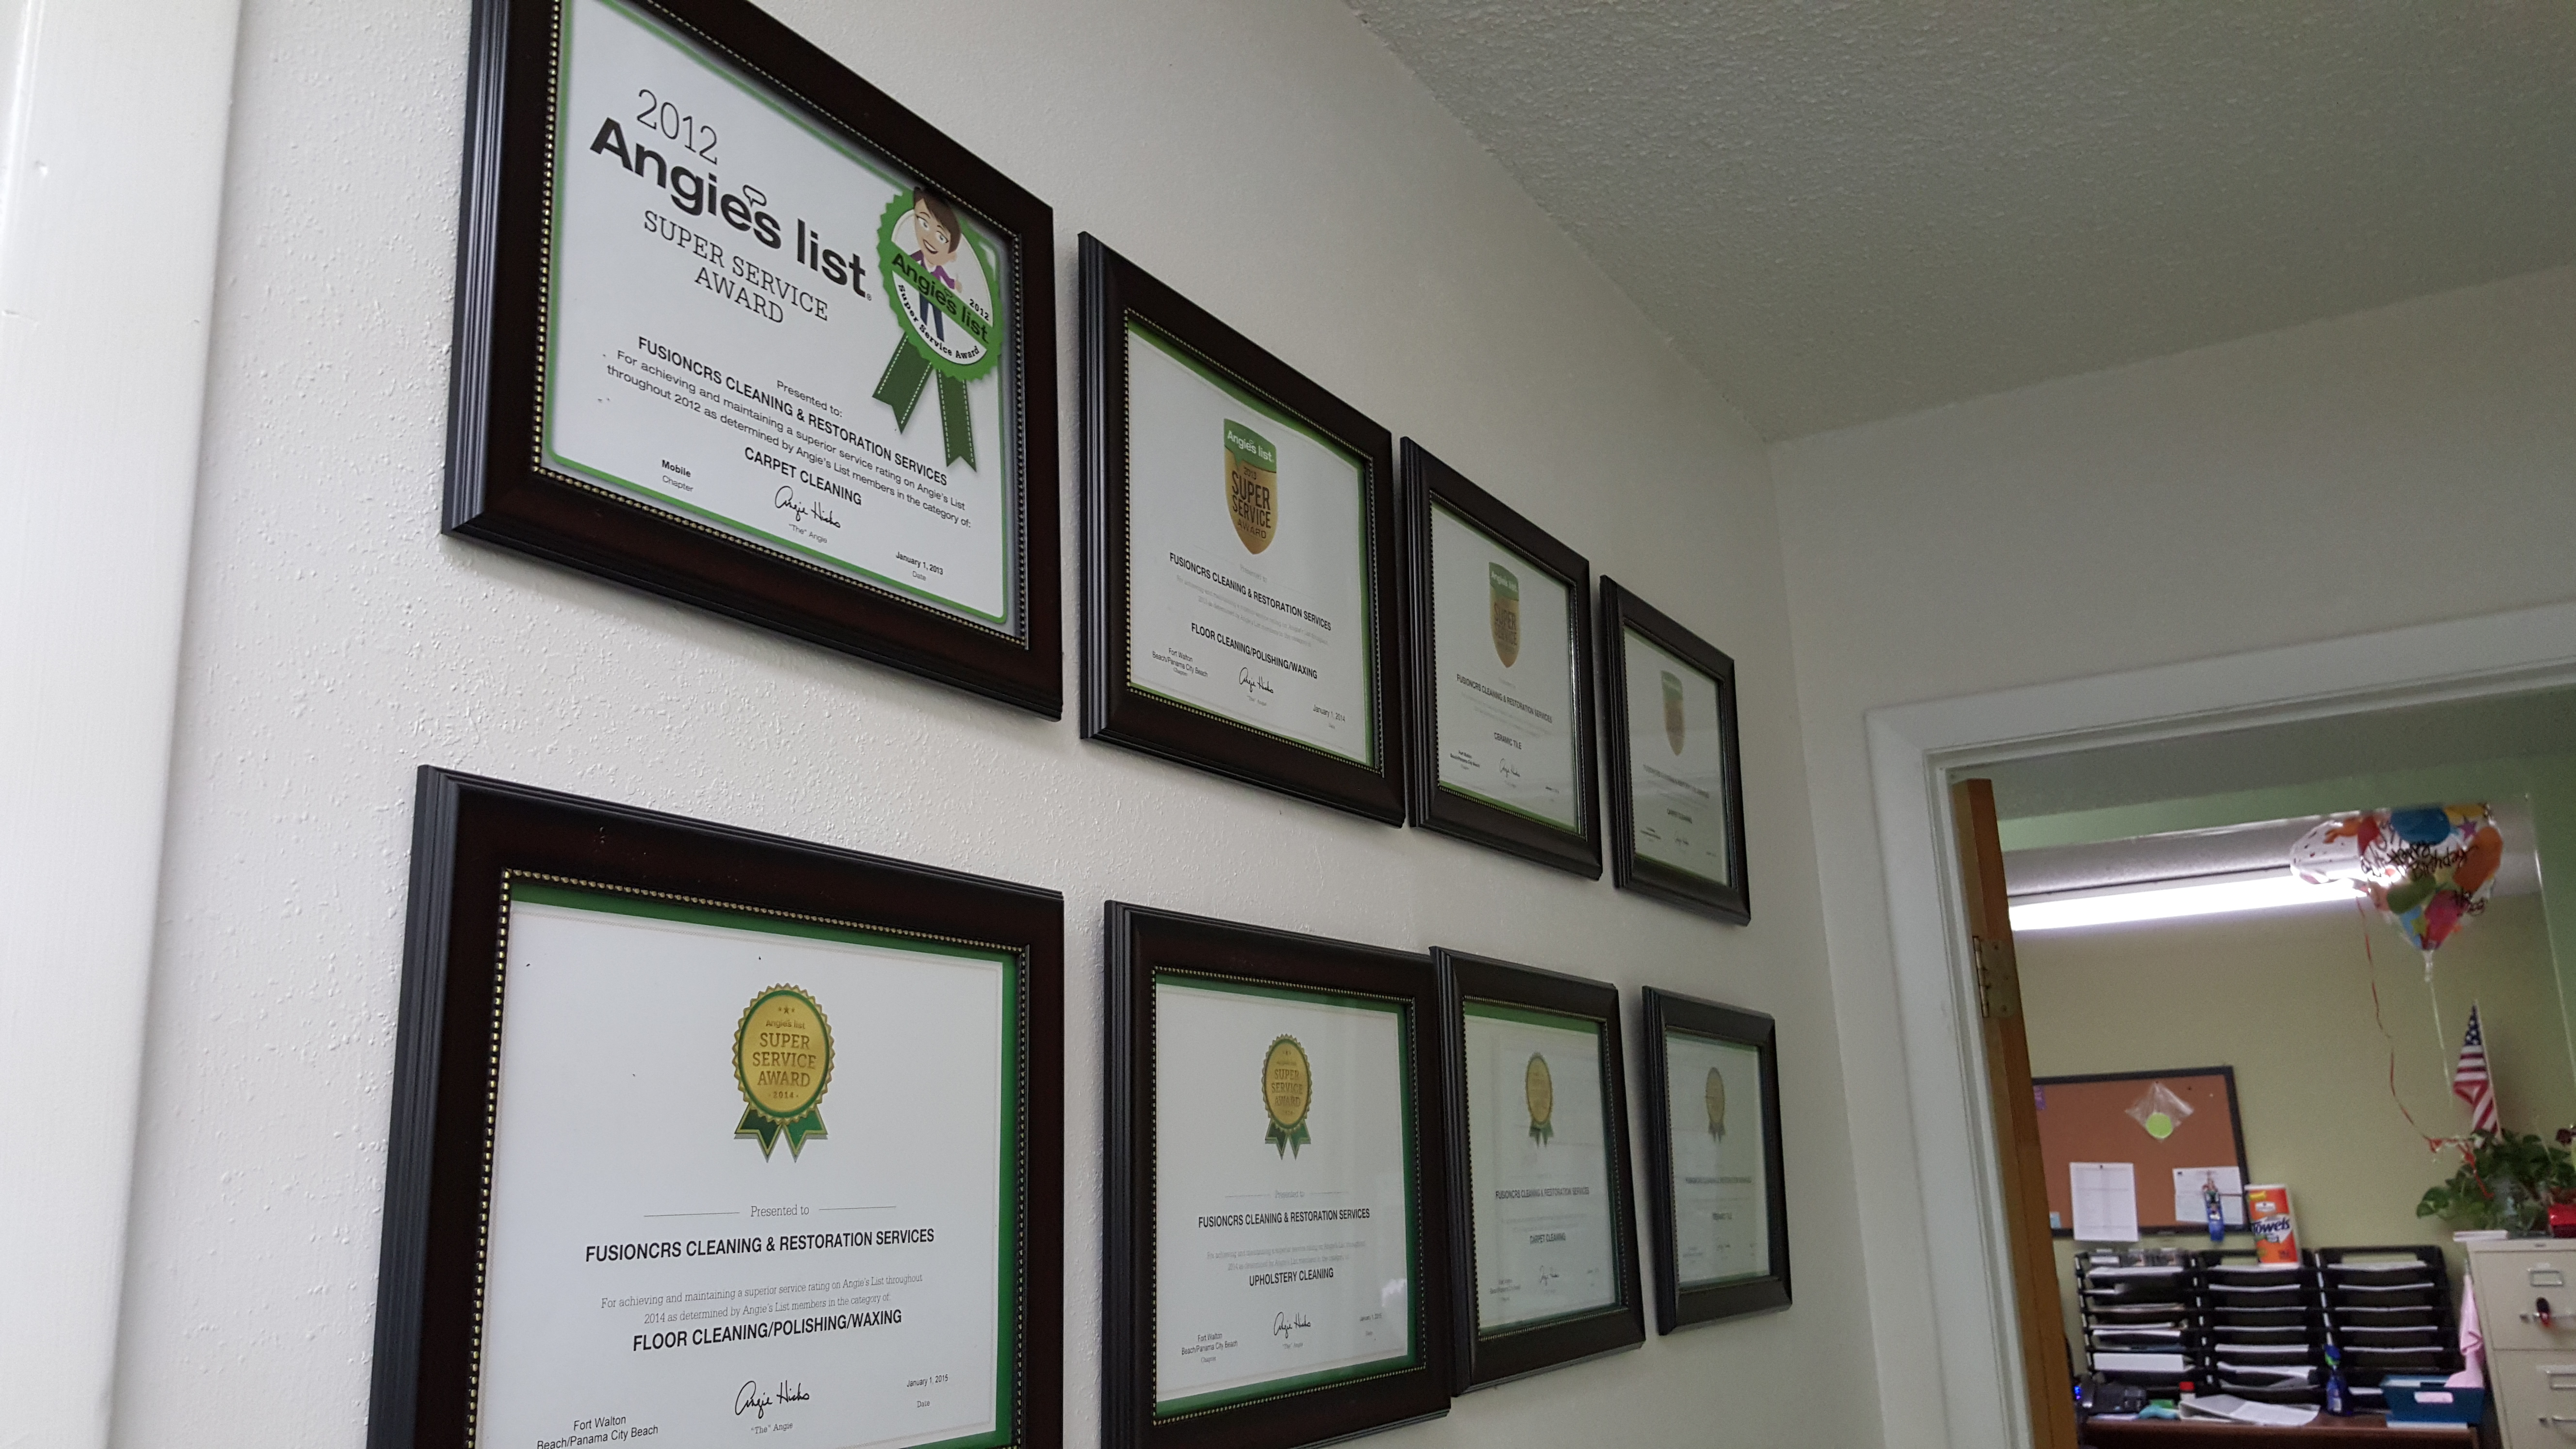 Awards from Angie's list